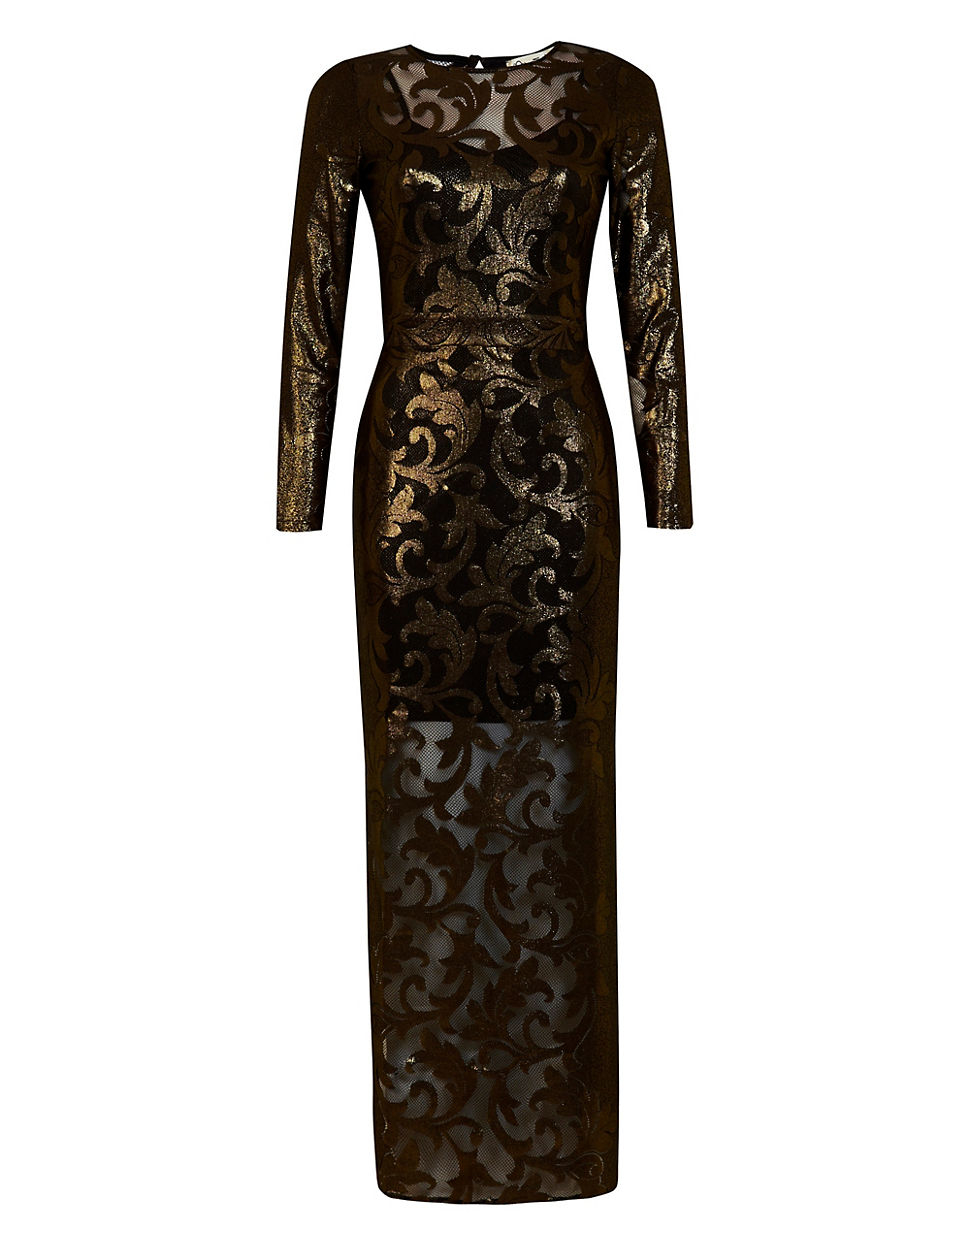 Miss selfridge black and gold dress